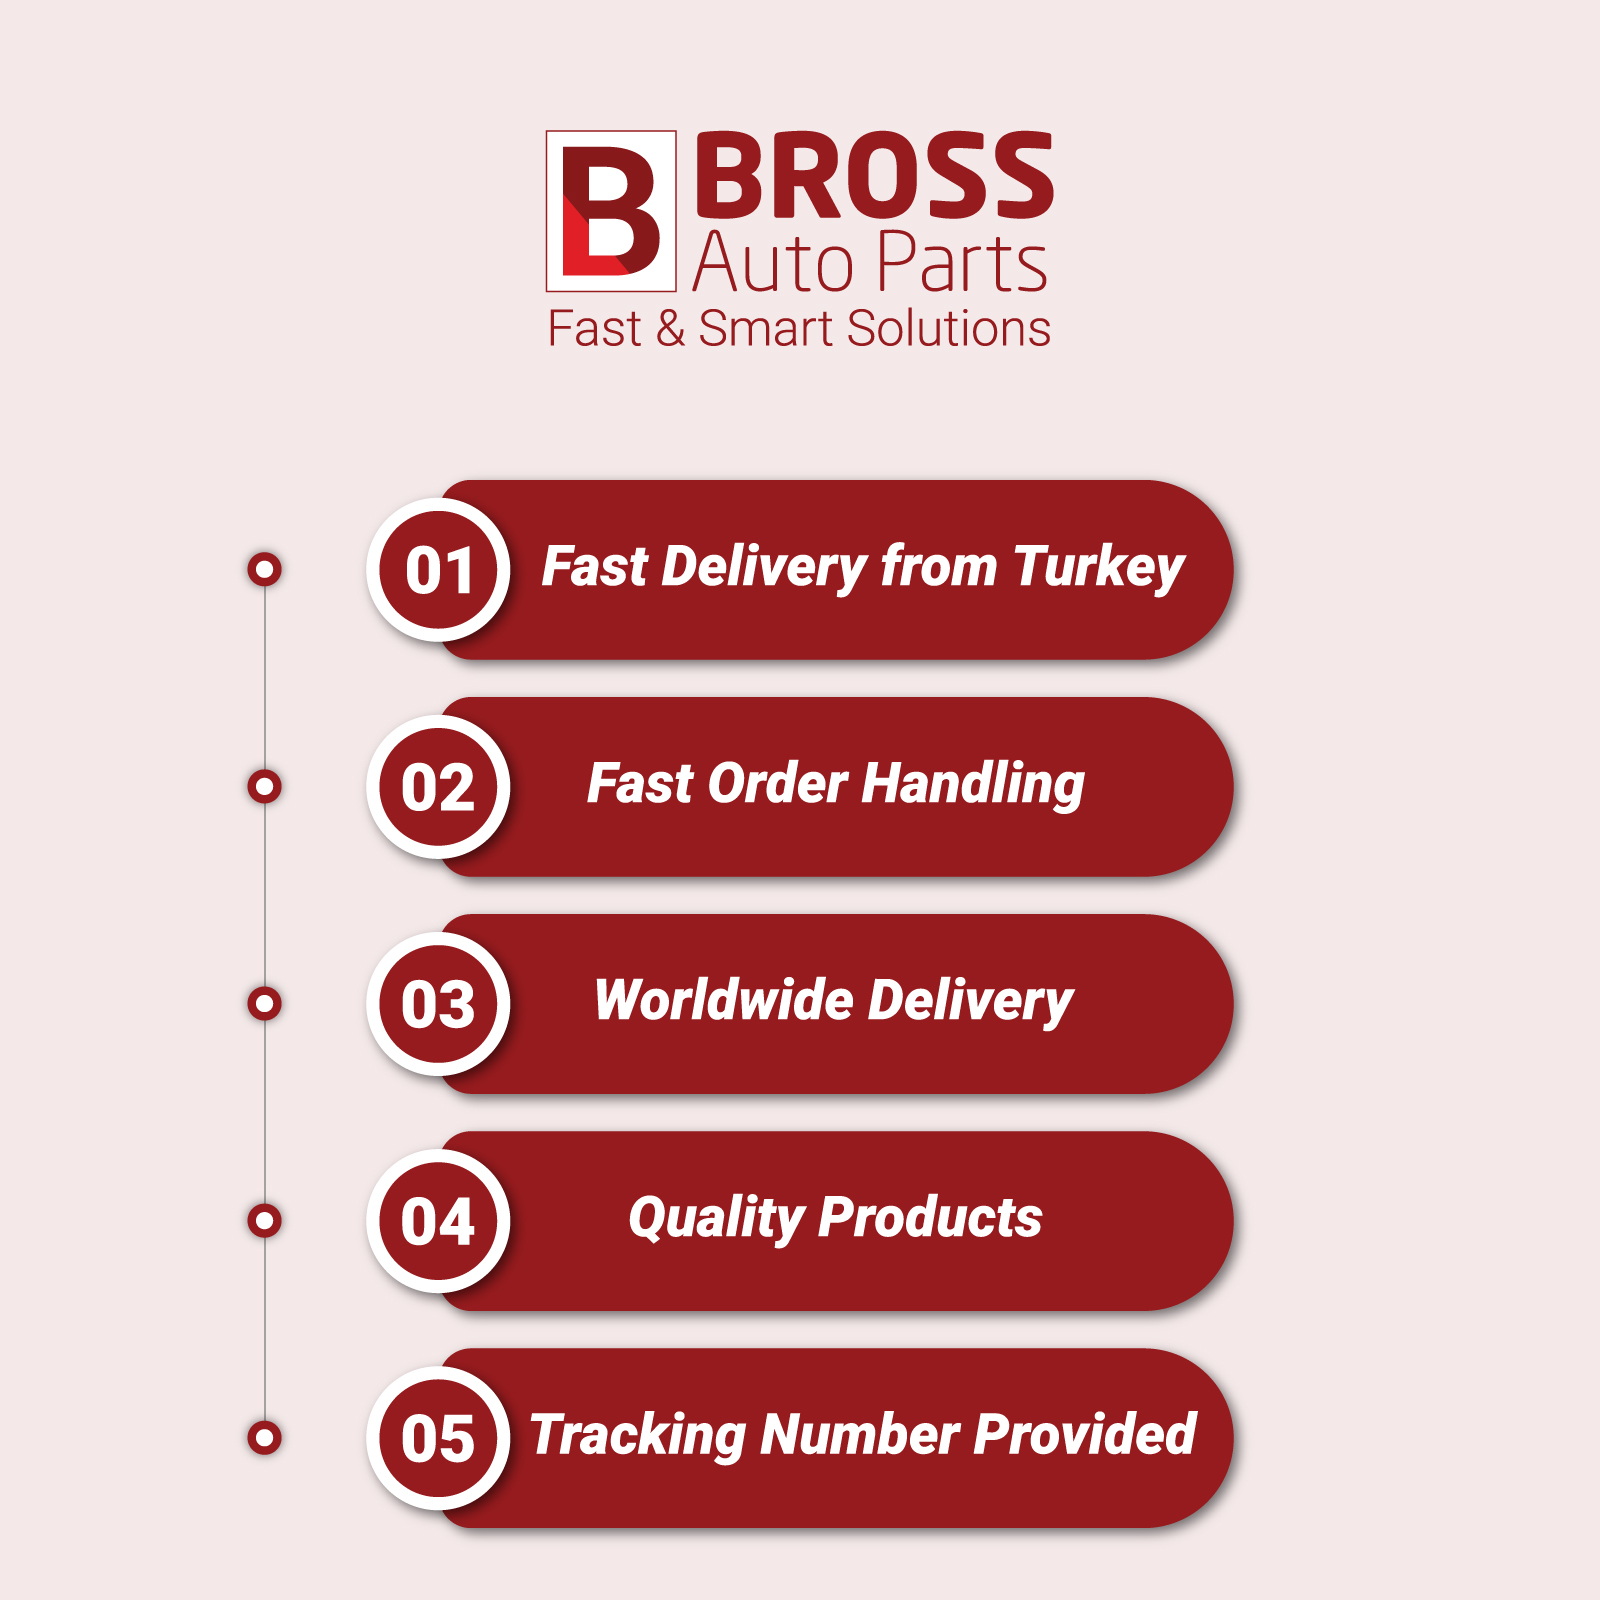 Bross Auto Parts BSR571 Sunroof Shade Curtain Repair Parts for Citroen C4 Picasso Fast Shipment Free Shipment Ship From Turkey